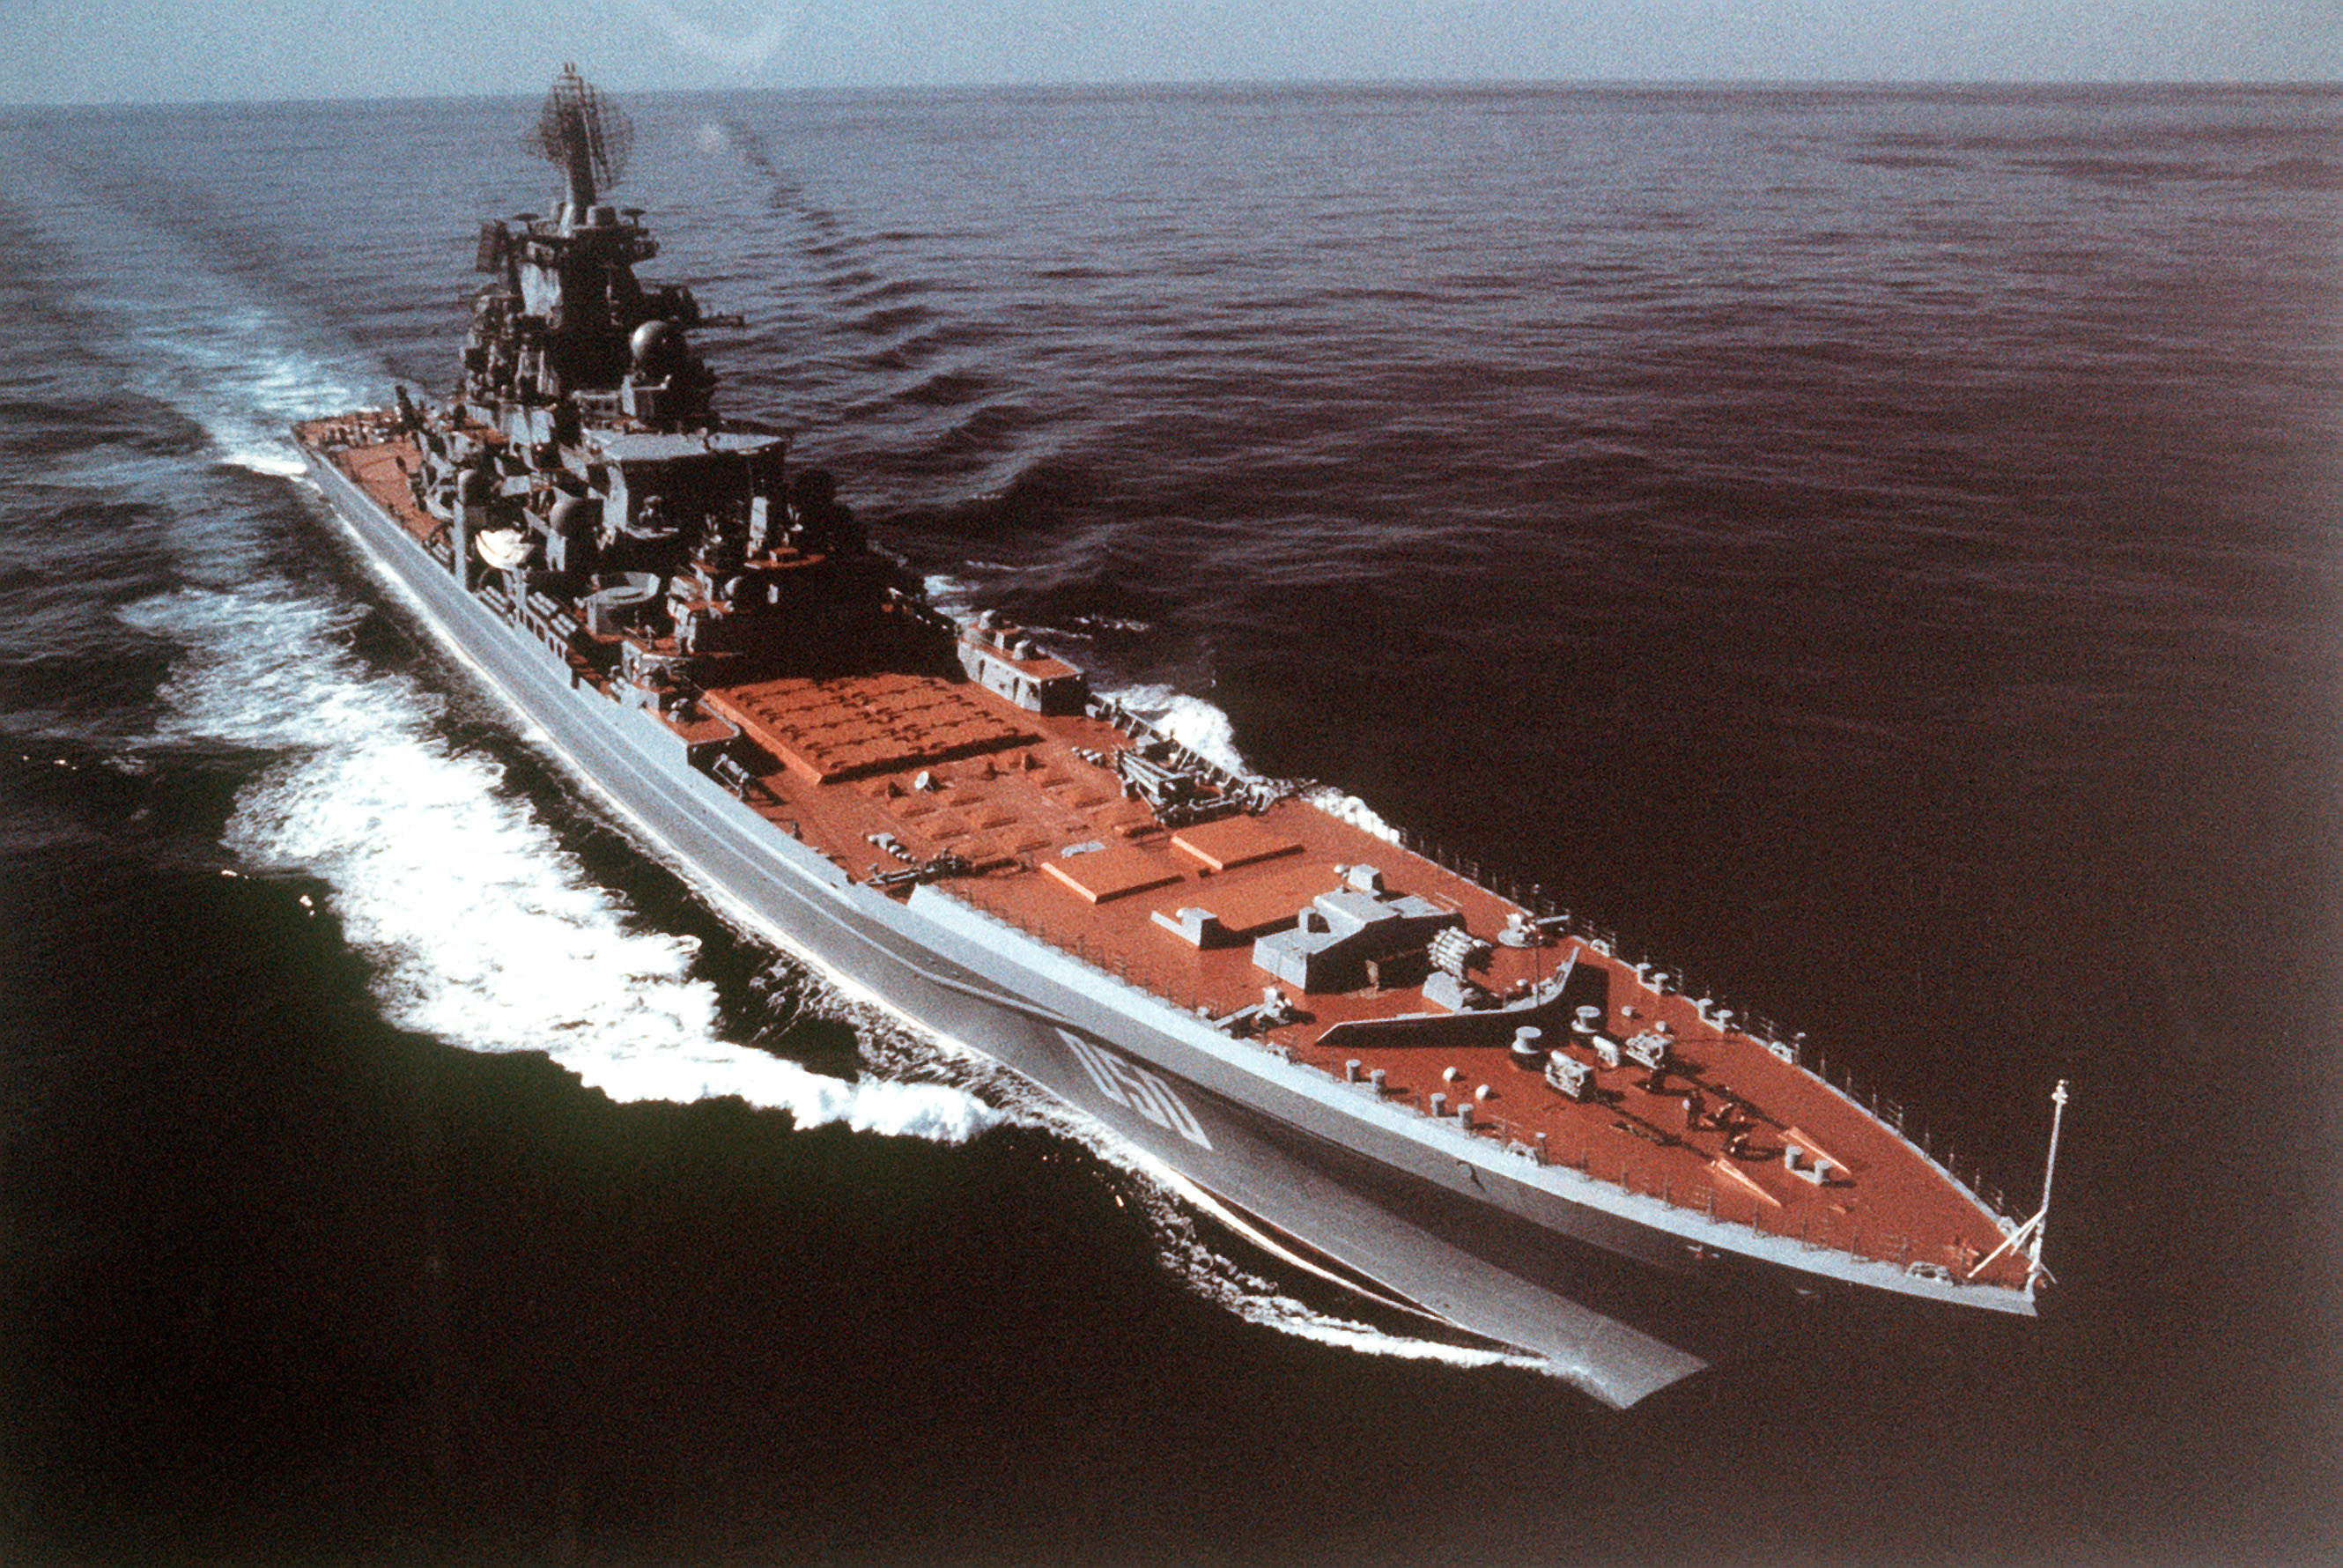 http://dic.academic.ru/pictures/wiki/files/107/kirov-class_battlecruiser.jpg